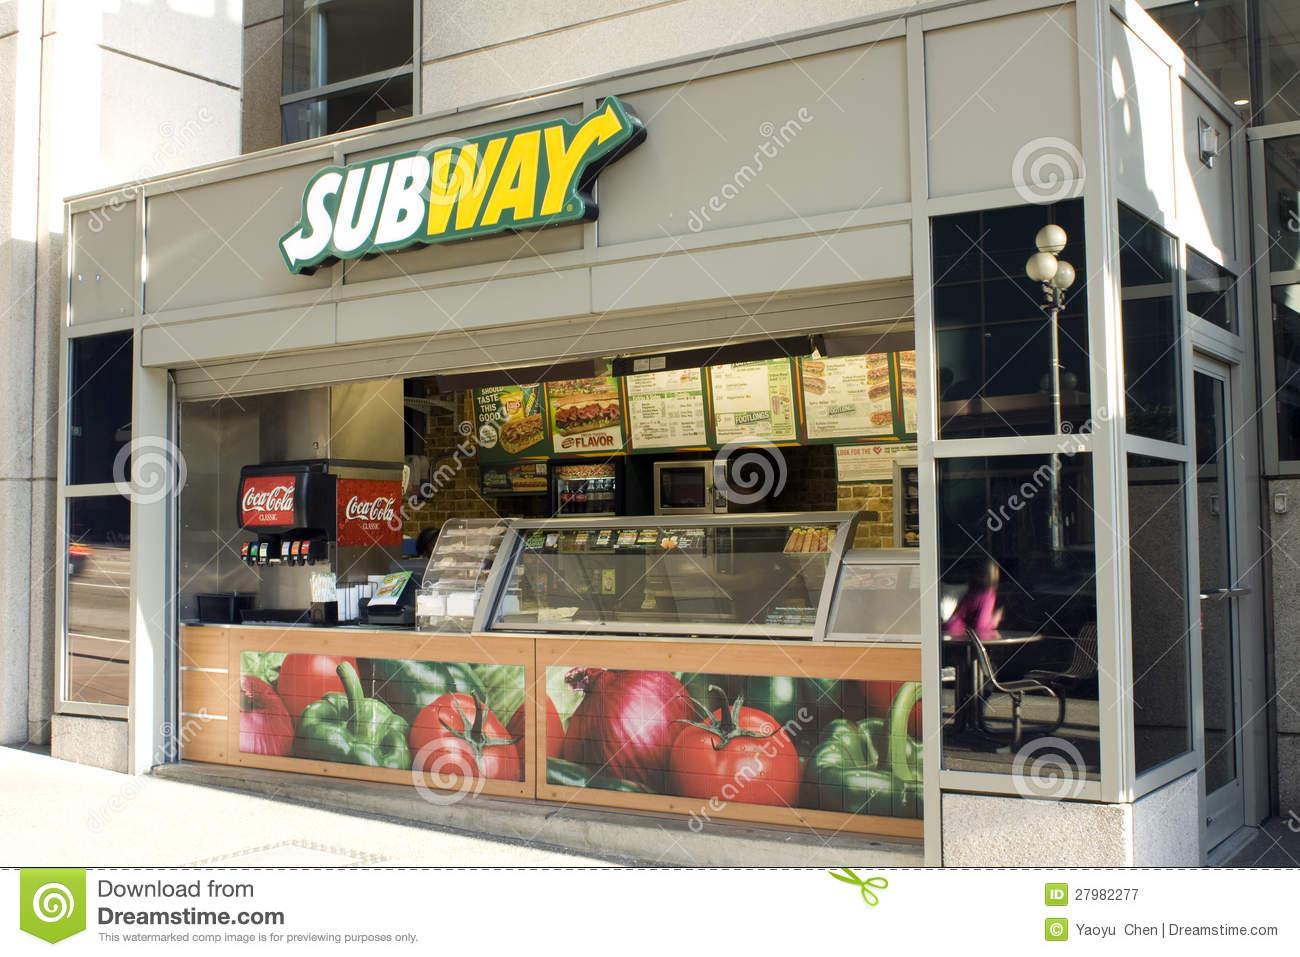 subway restaurant marketing mix Transcript of subway marketing mix by christelle and beatriz subway's marketing mix threats swot analysis subway restaurant is one of the leading submarine sandwich.